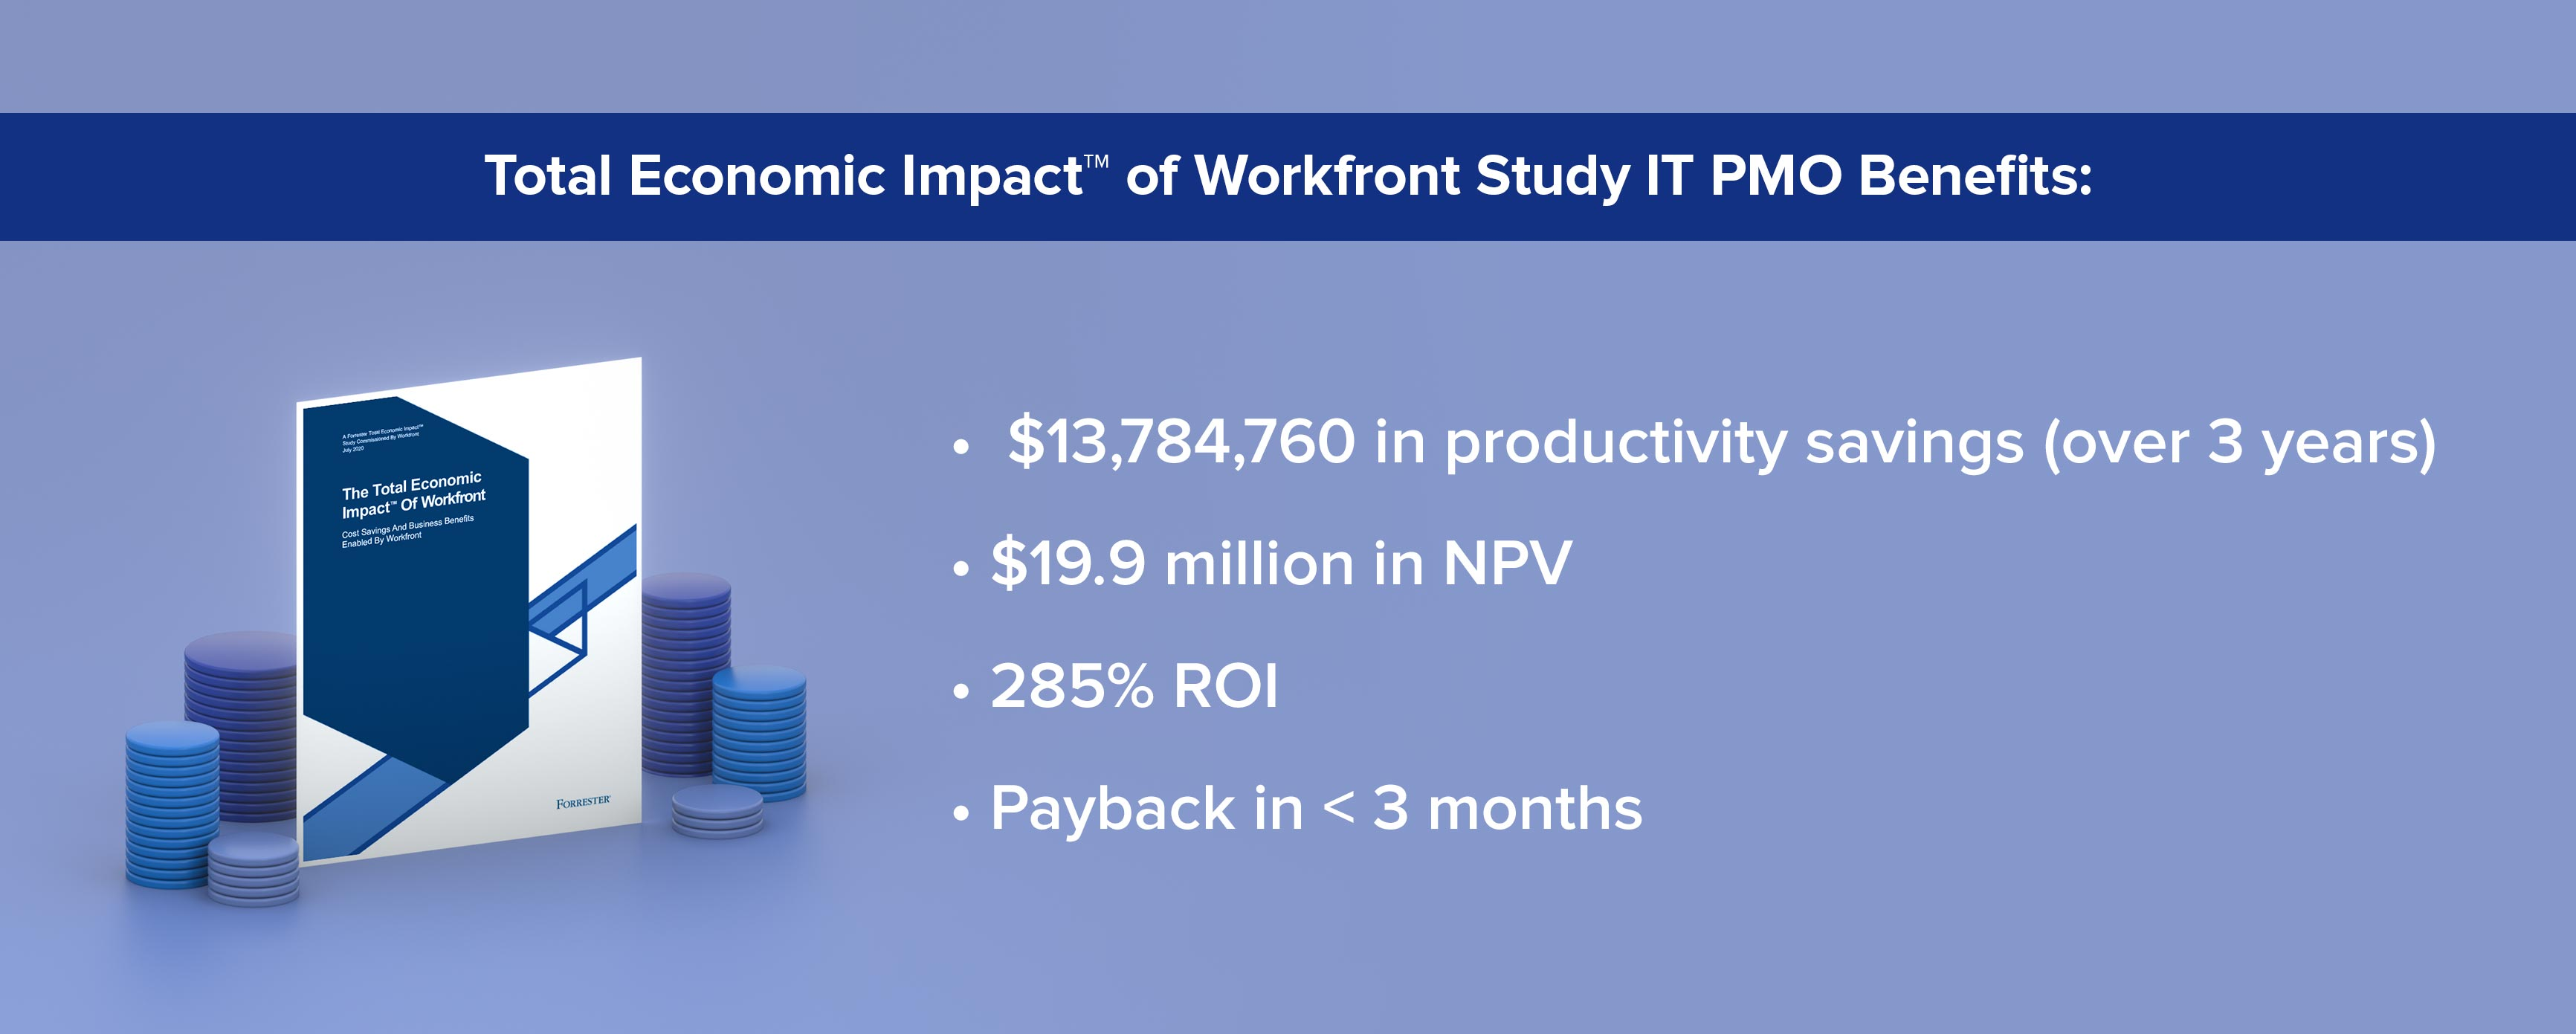 IT PMO benefits according to Forrester include $13.8 million in productivity savings, $19.9 million in NPV, 285 percent ROI, and payback in less than 3 months